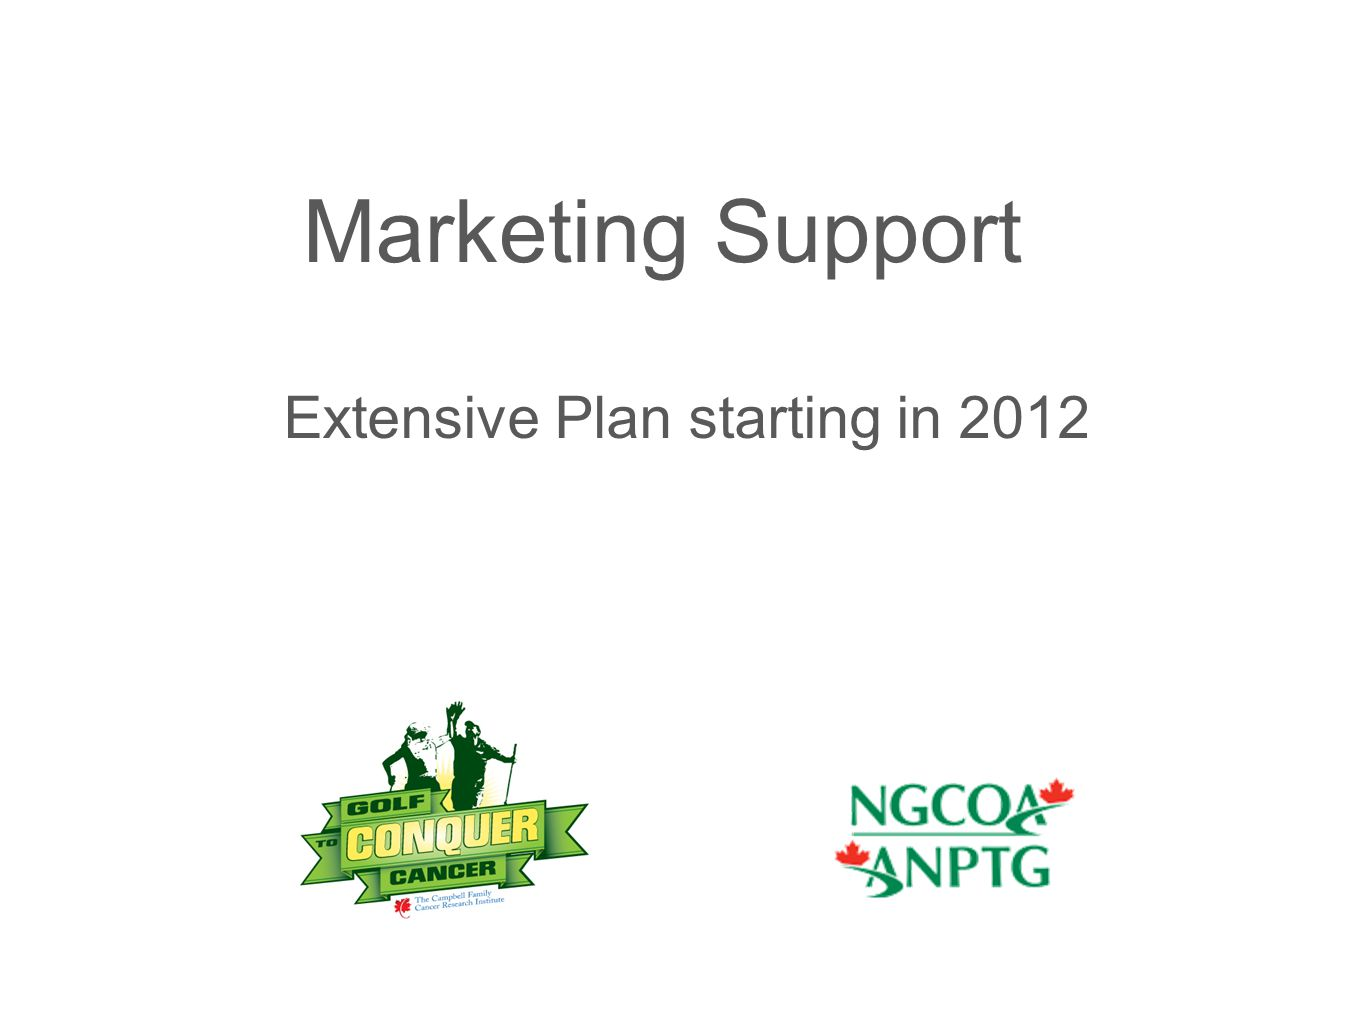 Marketing Support Extensive Plan starting in 2012